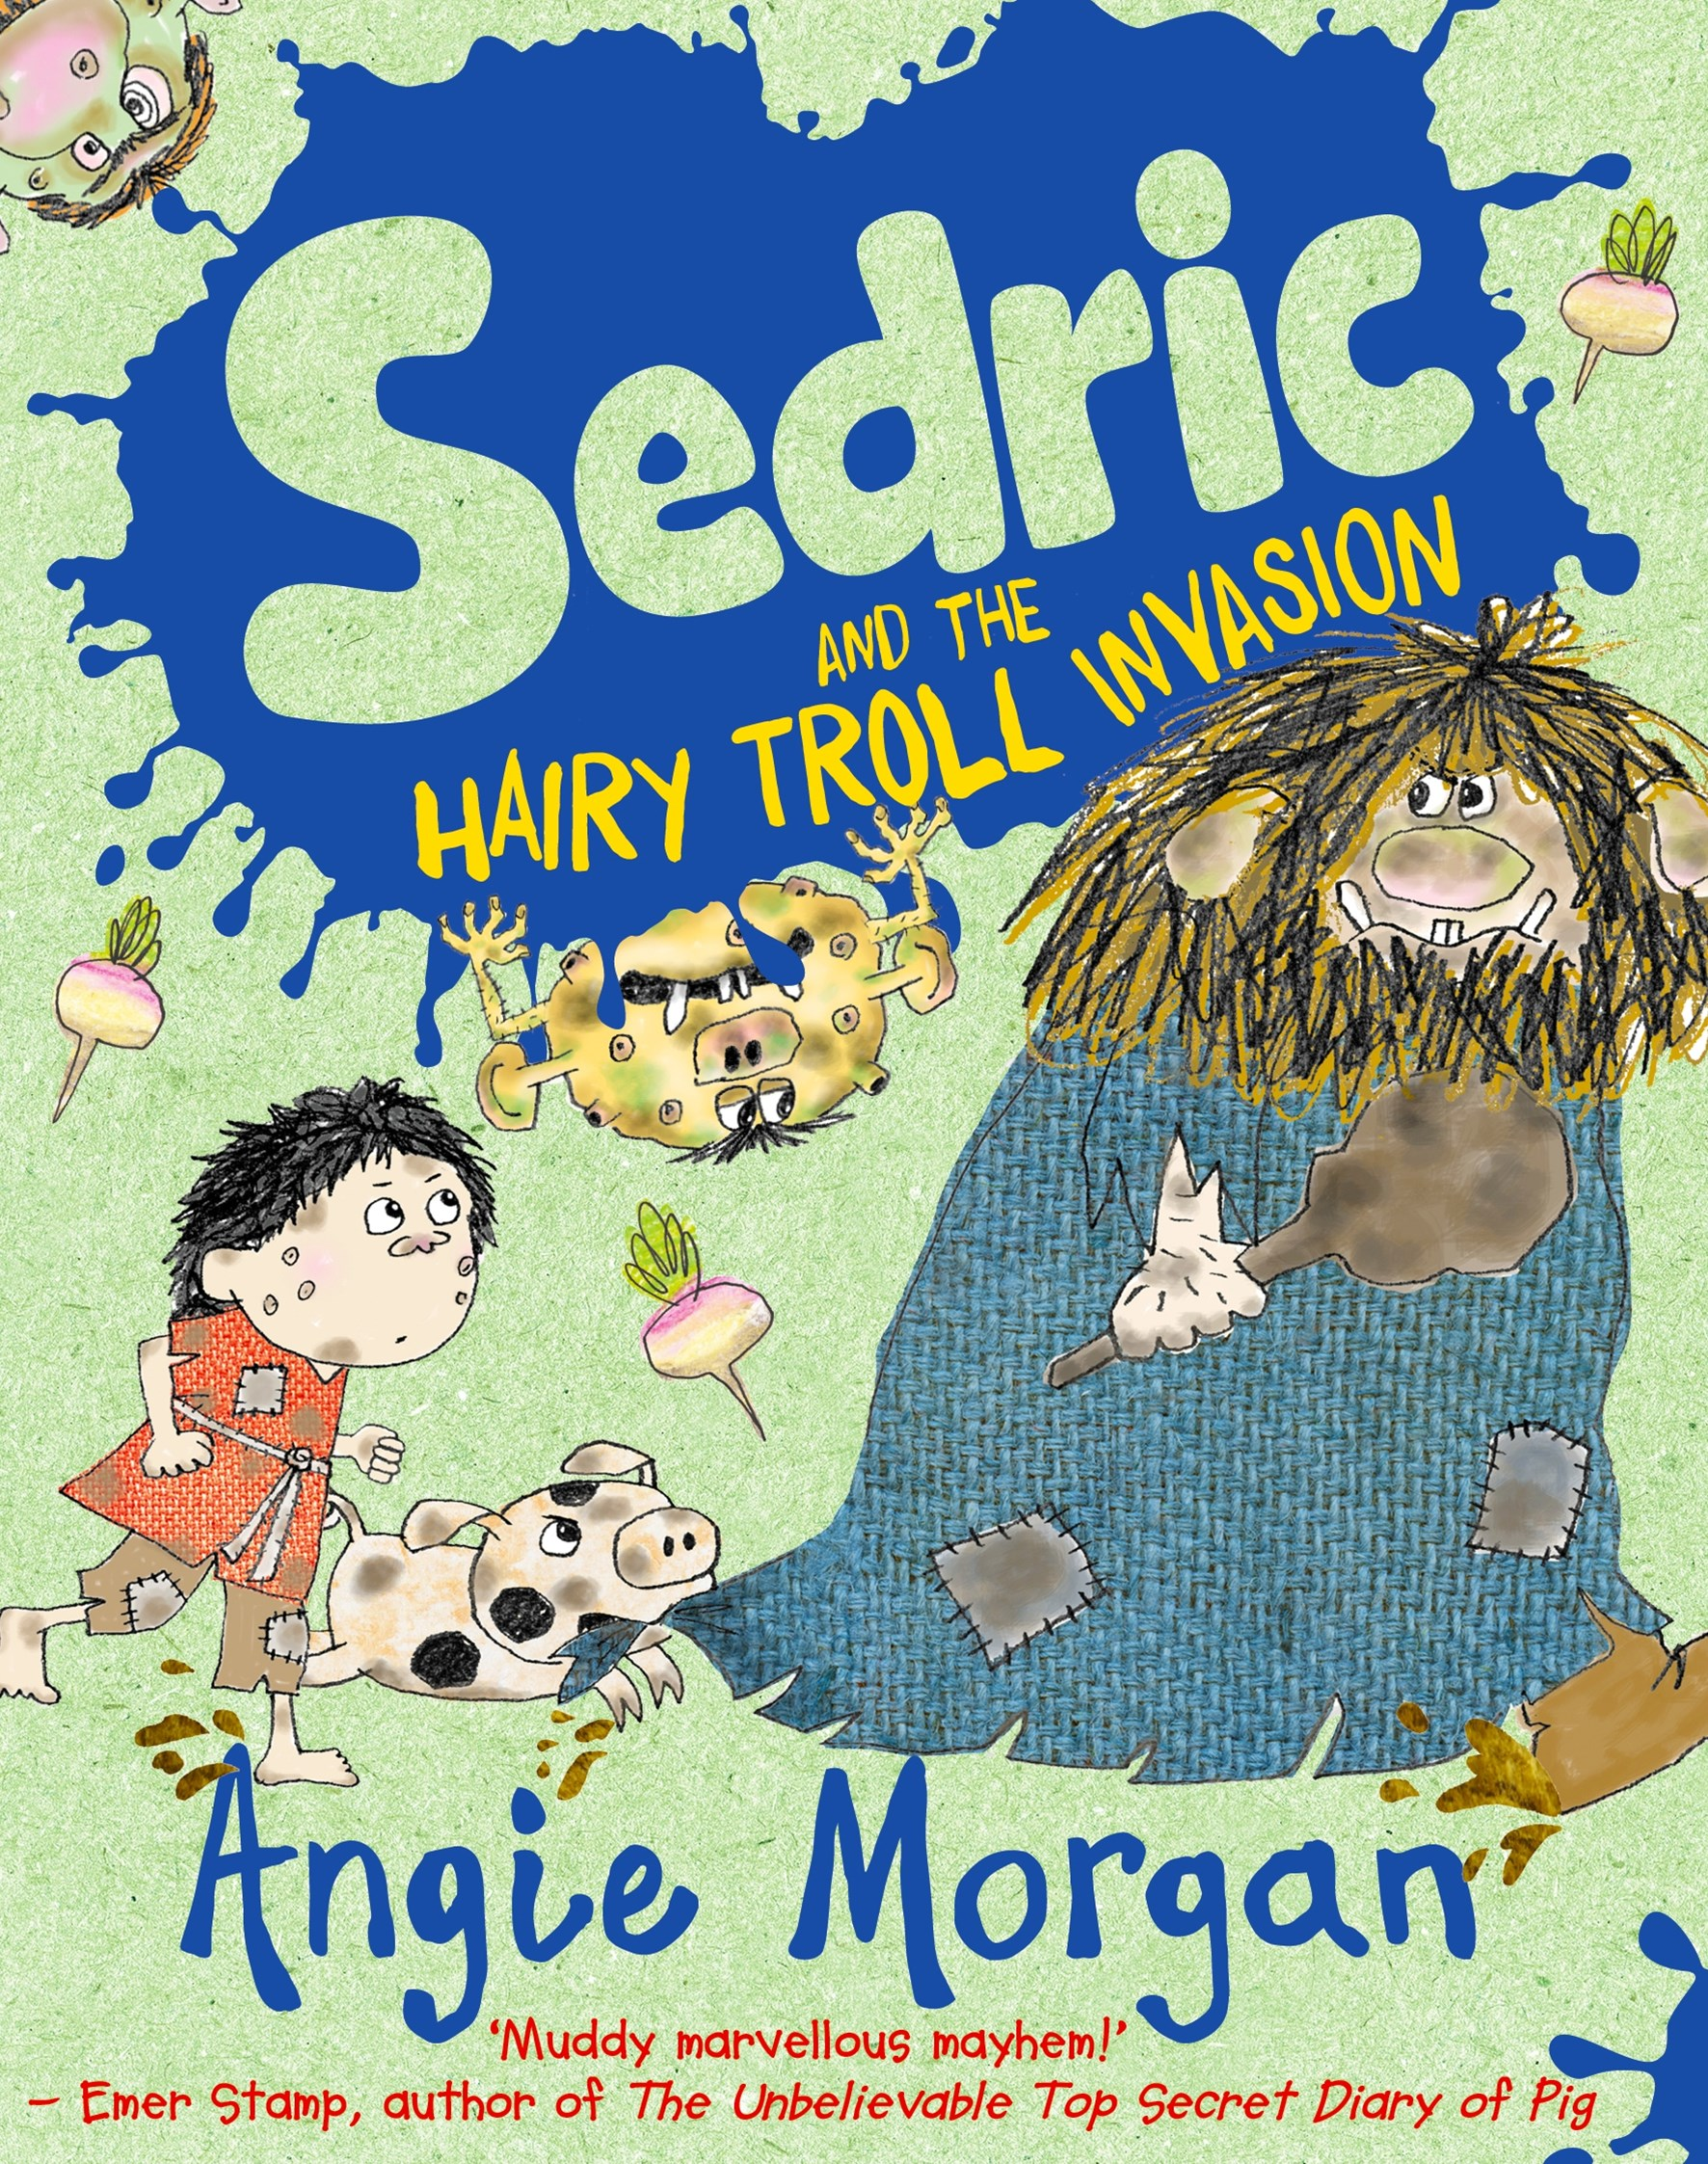 Sedric and the Hairy Troll Invasion